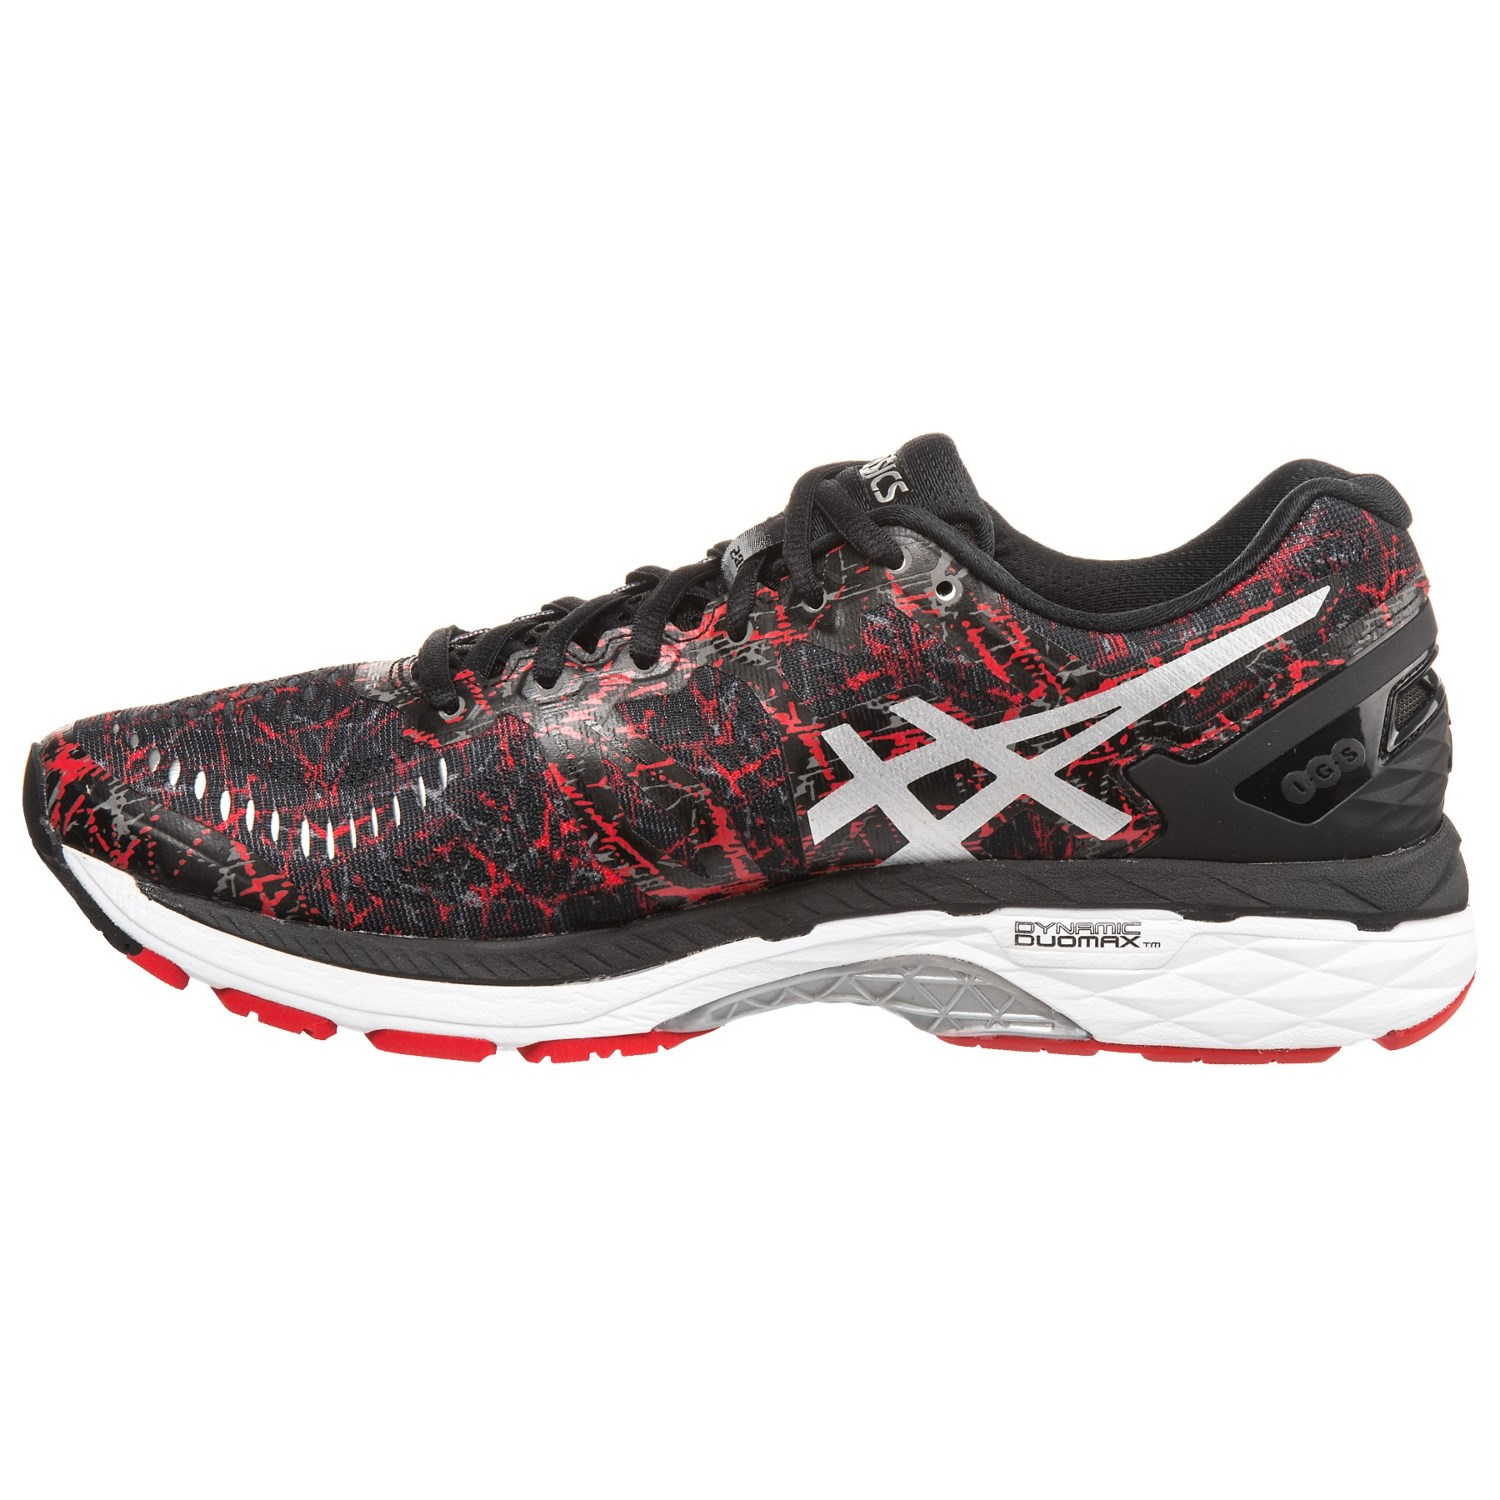 Asics Gel Kayano Running Shoes Reviews